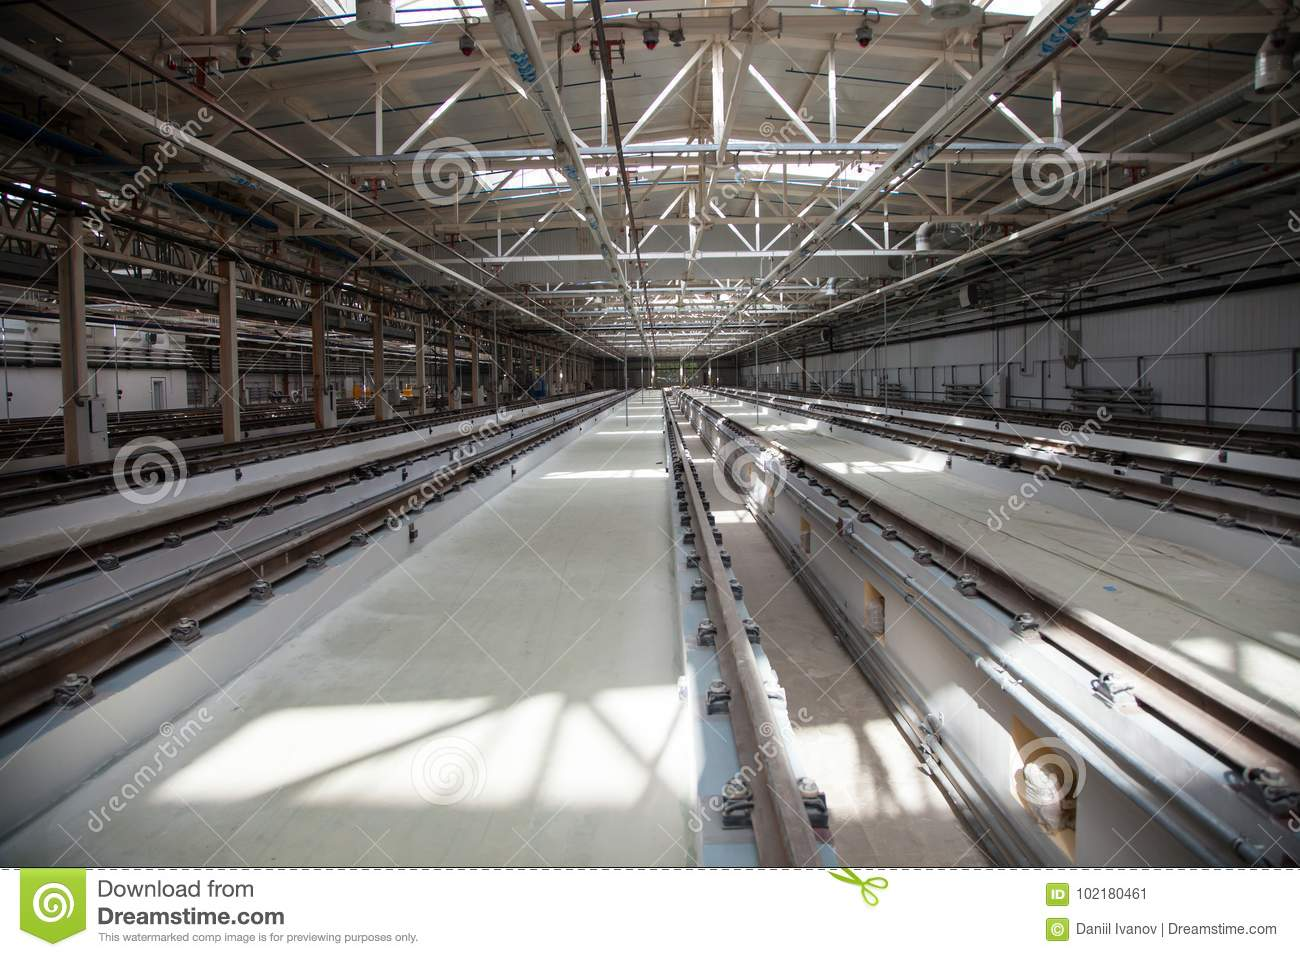 The Railway Maintenance And Factory Stock Image - Image of